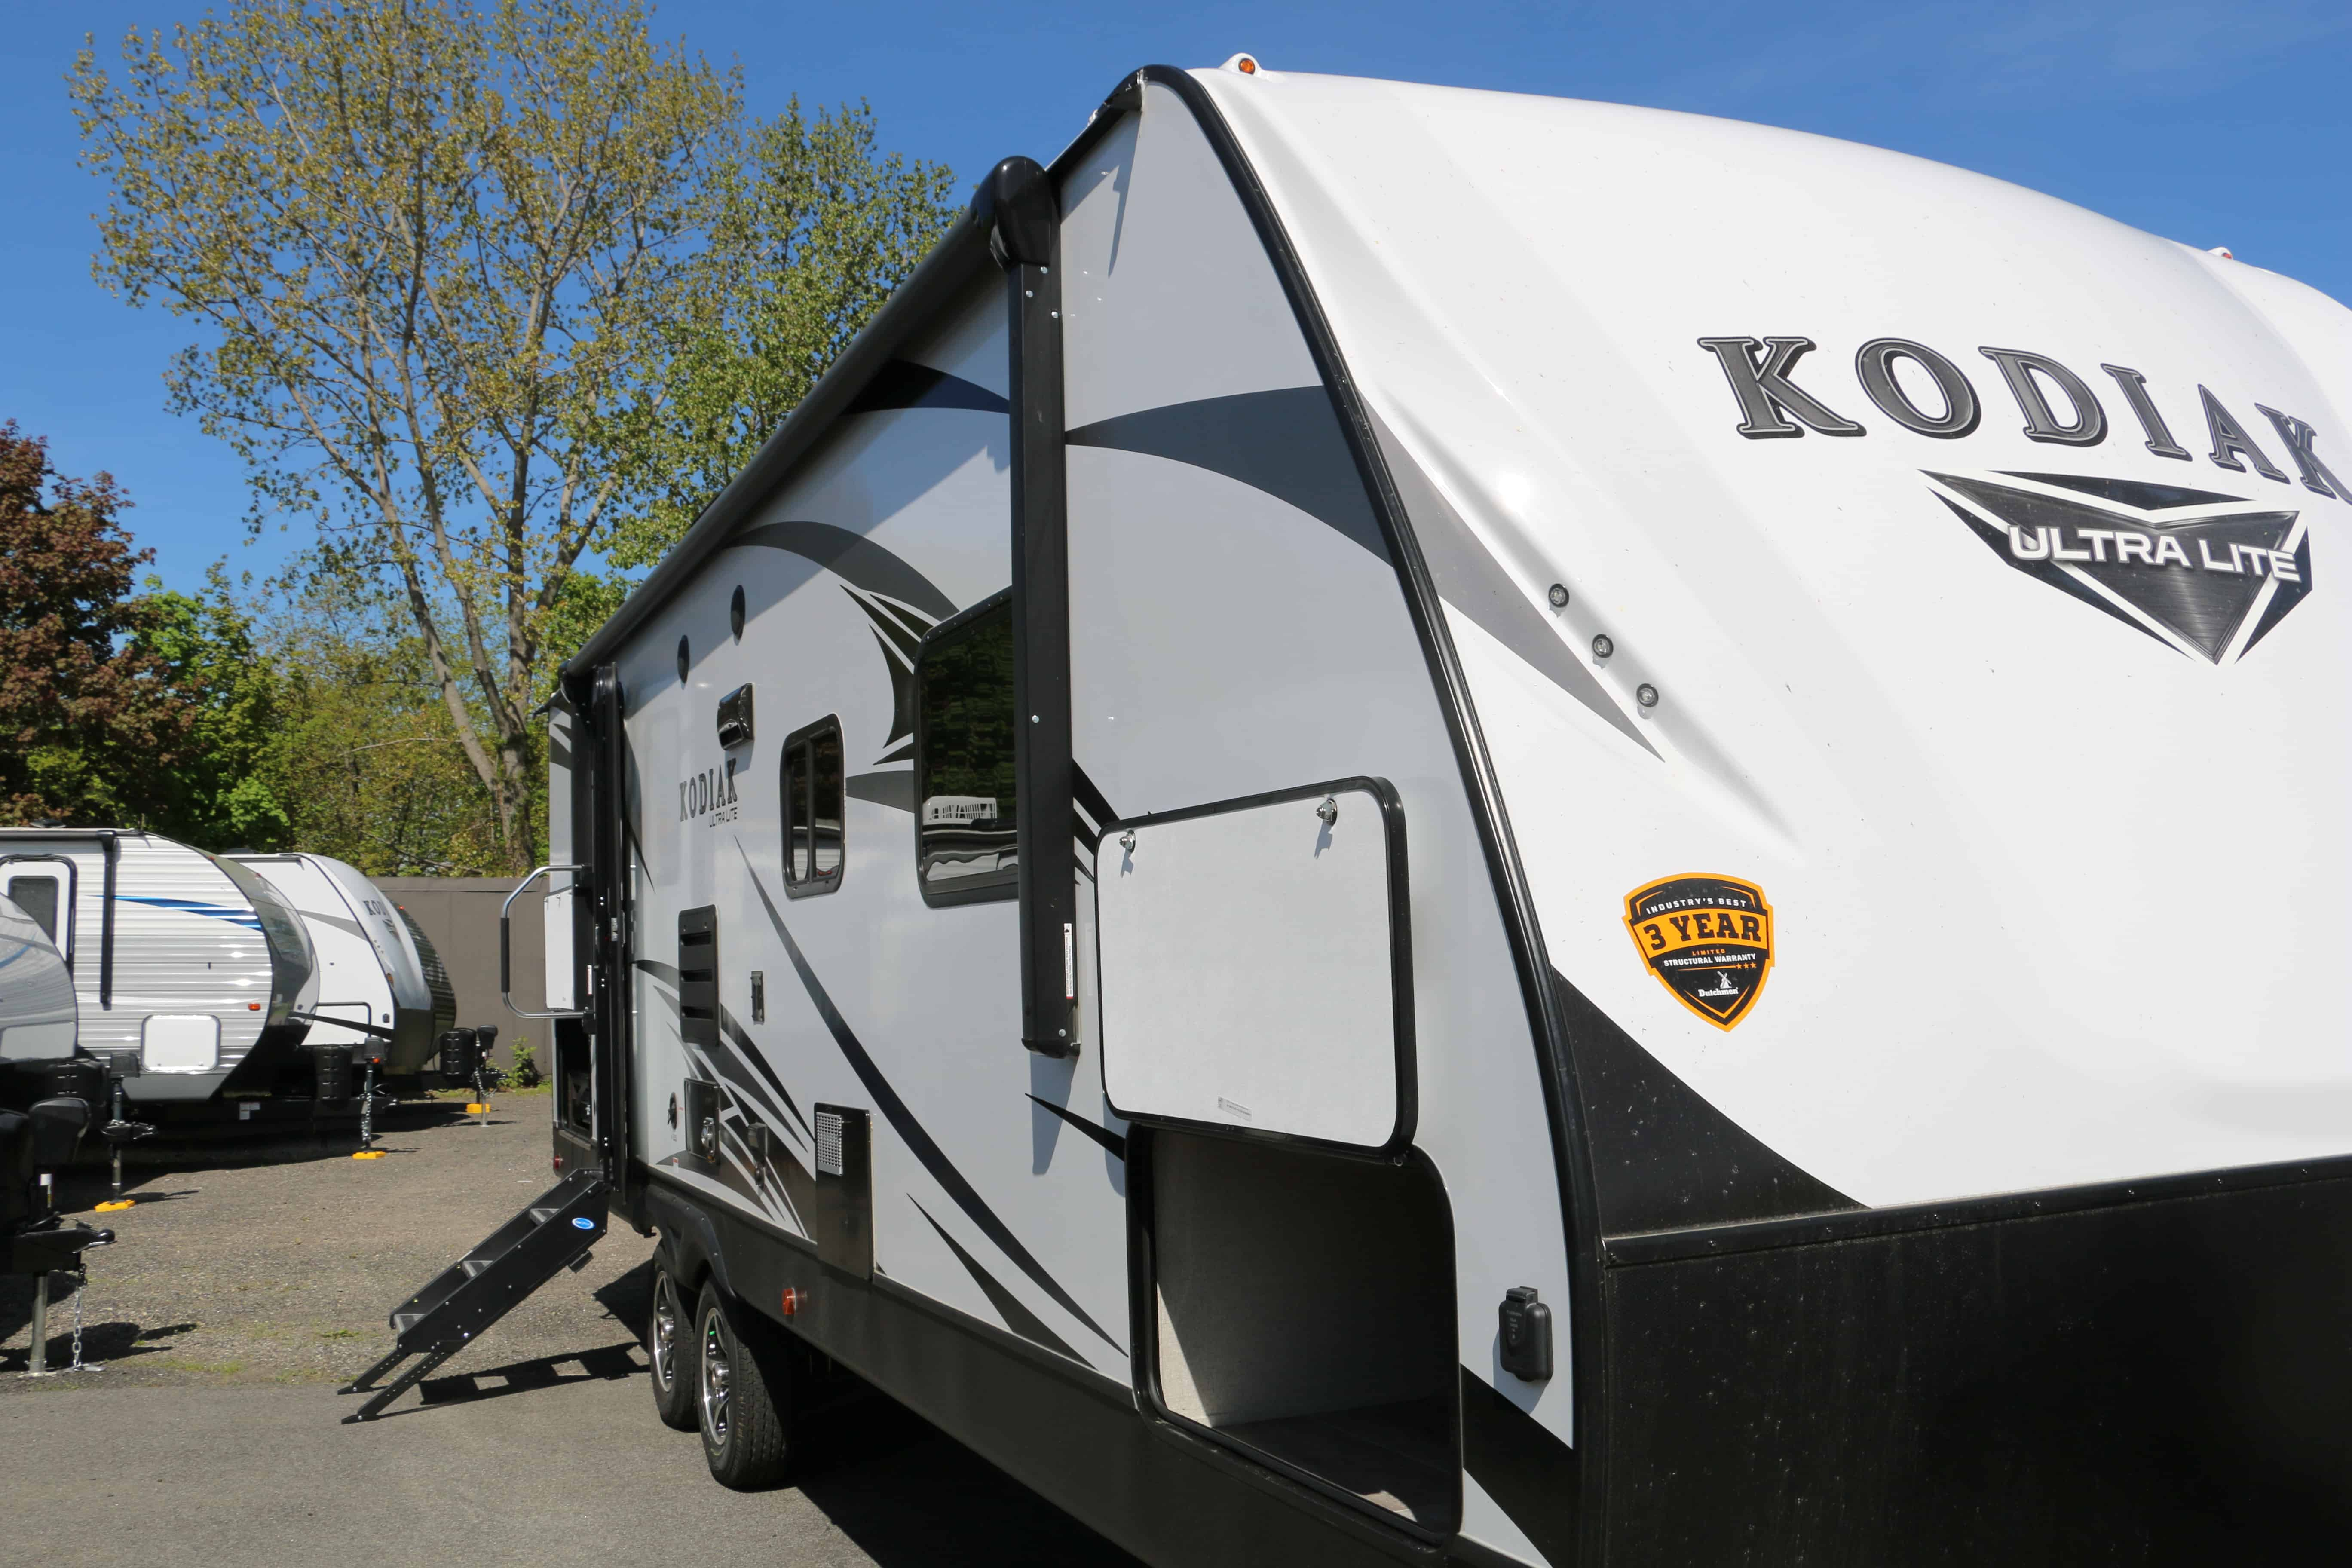 2018 Kodiak Travel Trailers Floor Plans 2020 Dutchmen Kodiak 261rbsl For Sale